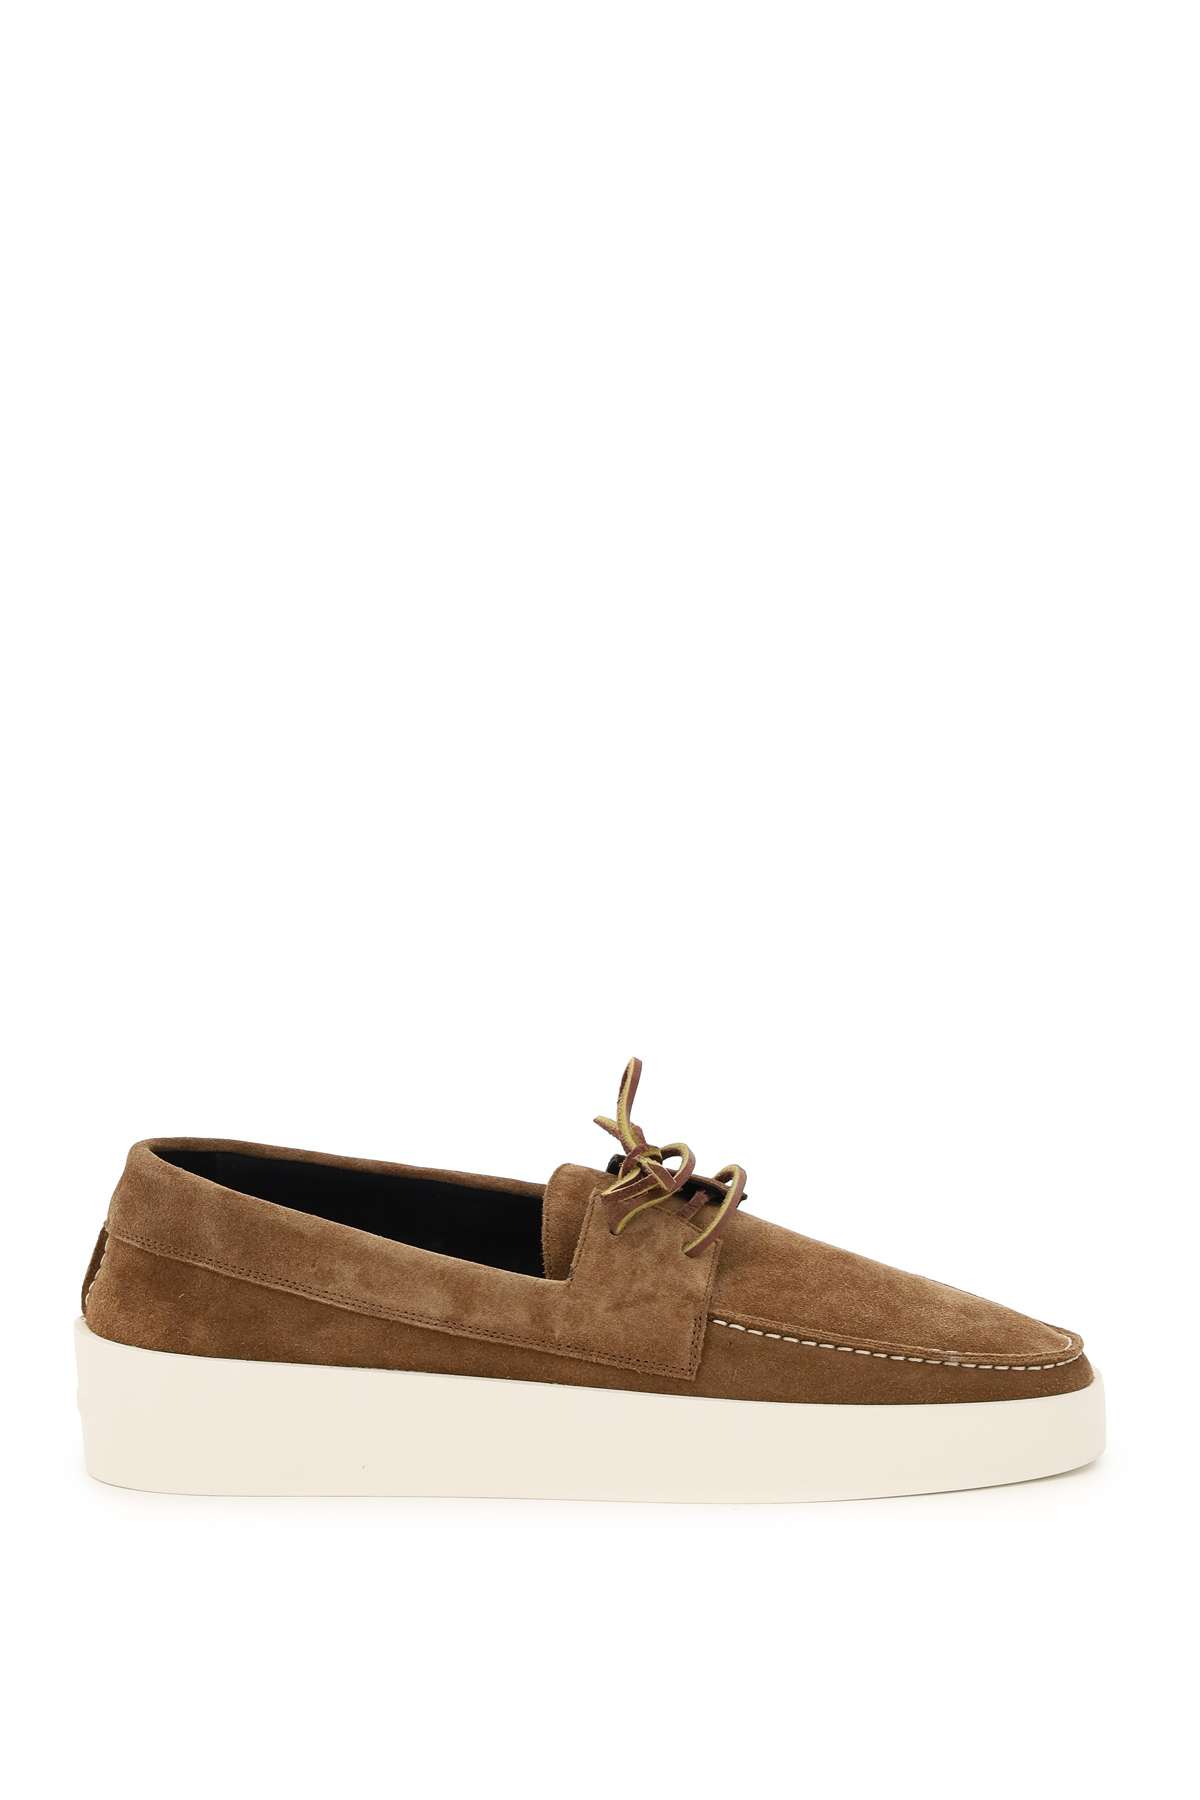 Fear of god mocassini boat in suede